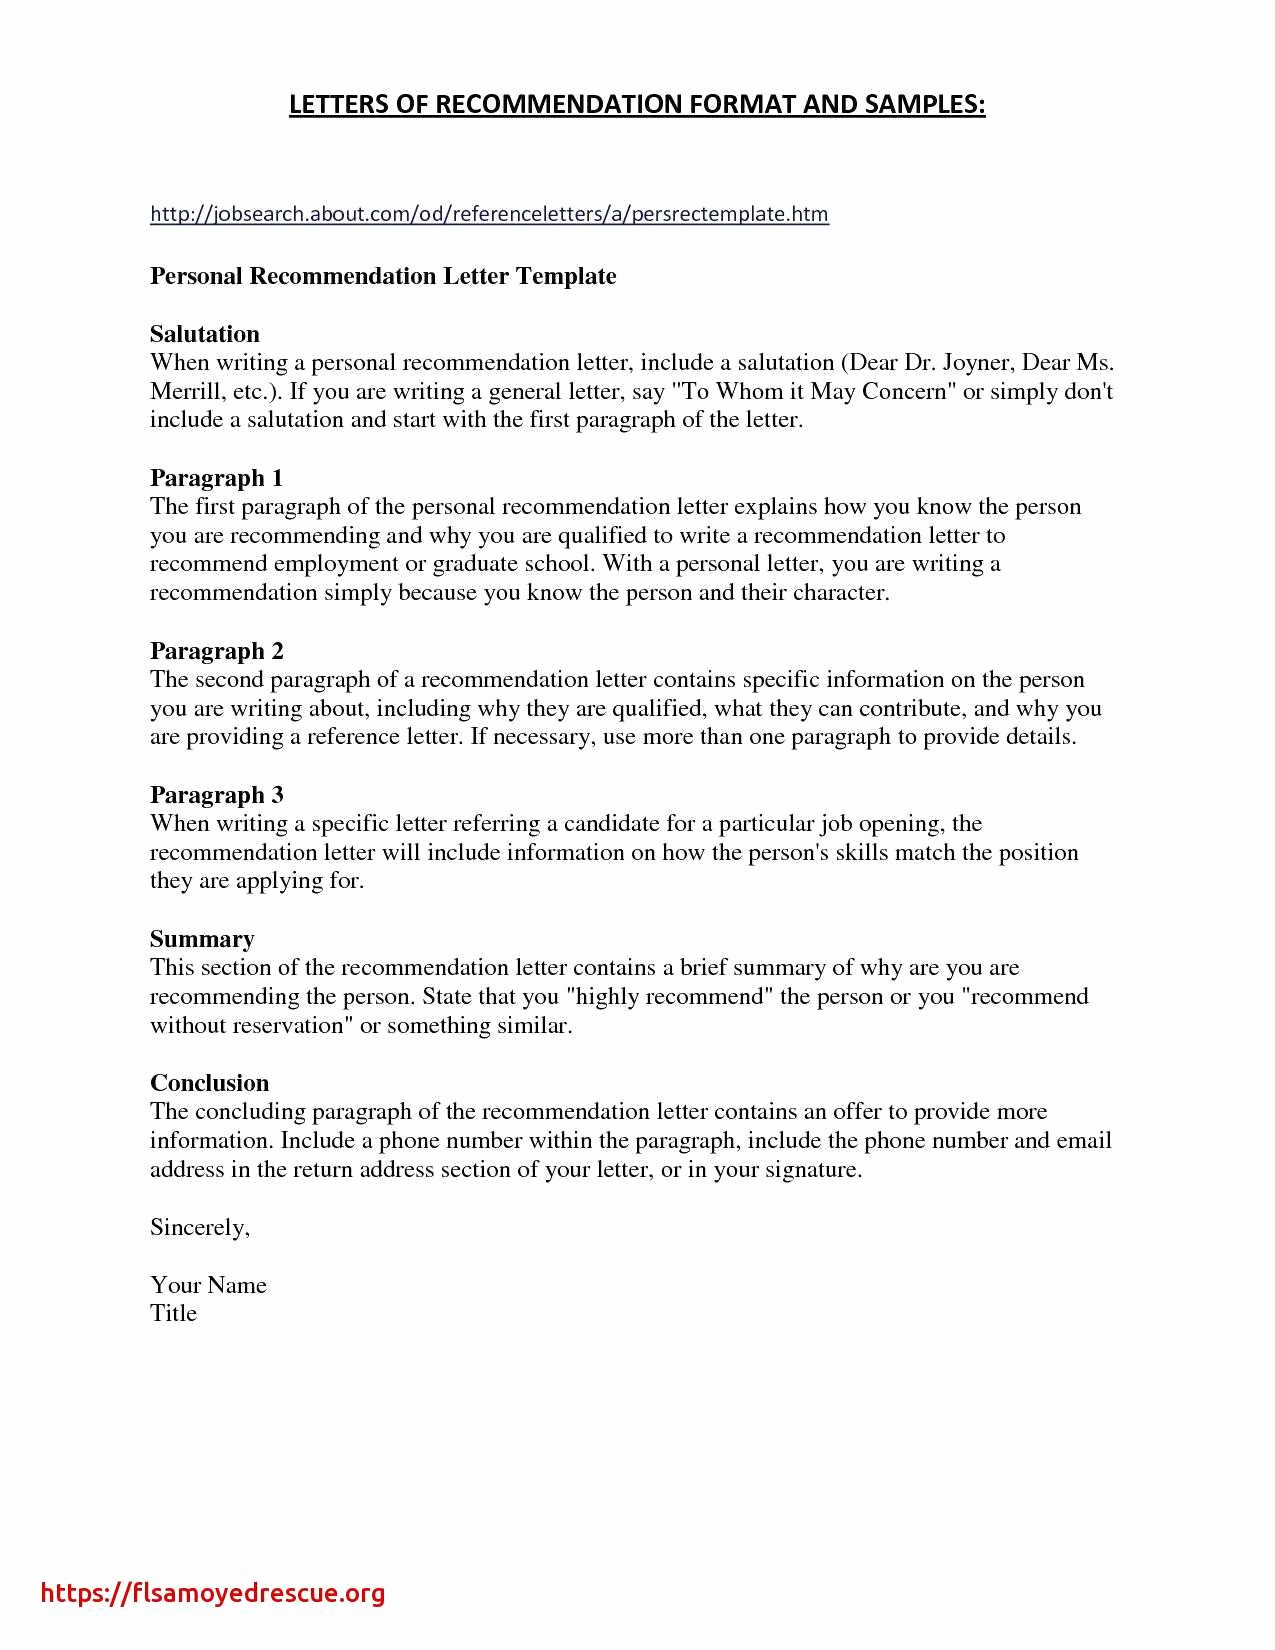 Letter to Referring Physician Template Best Of 9 Thank You Letter to Referring Physician Template